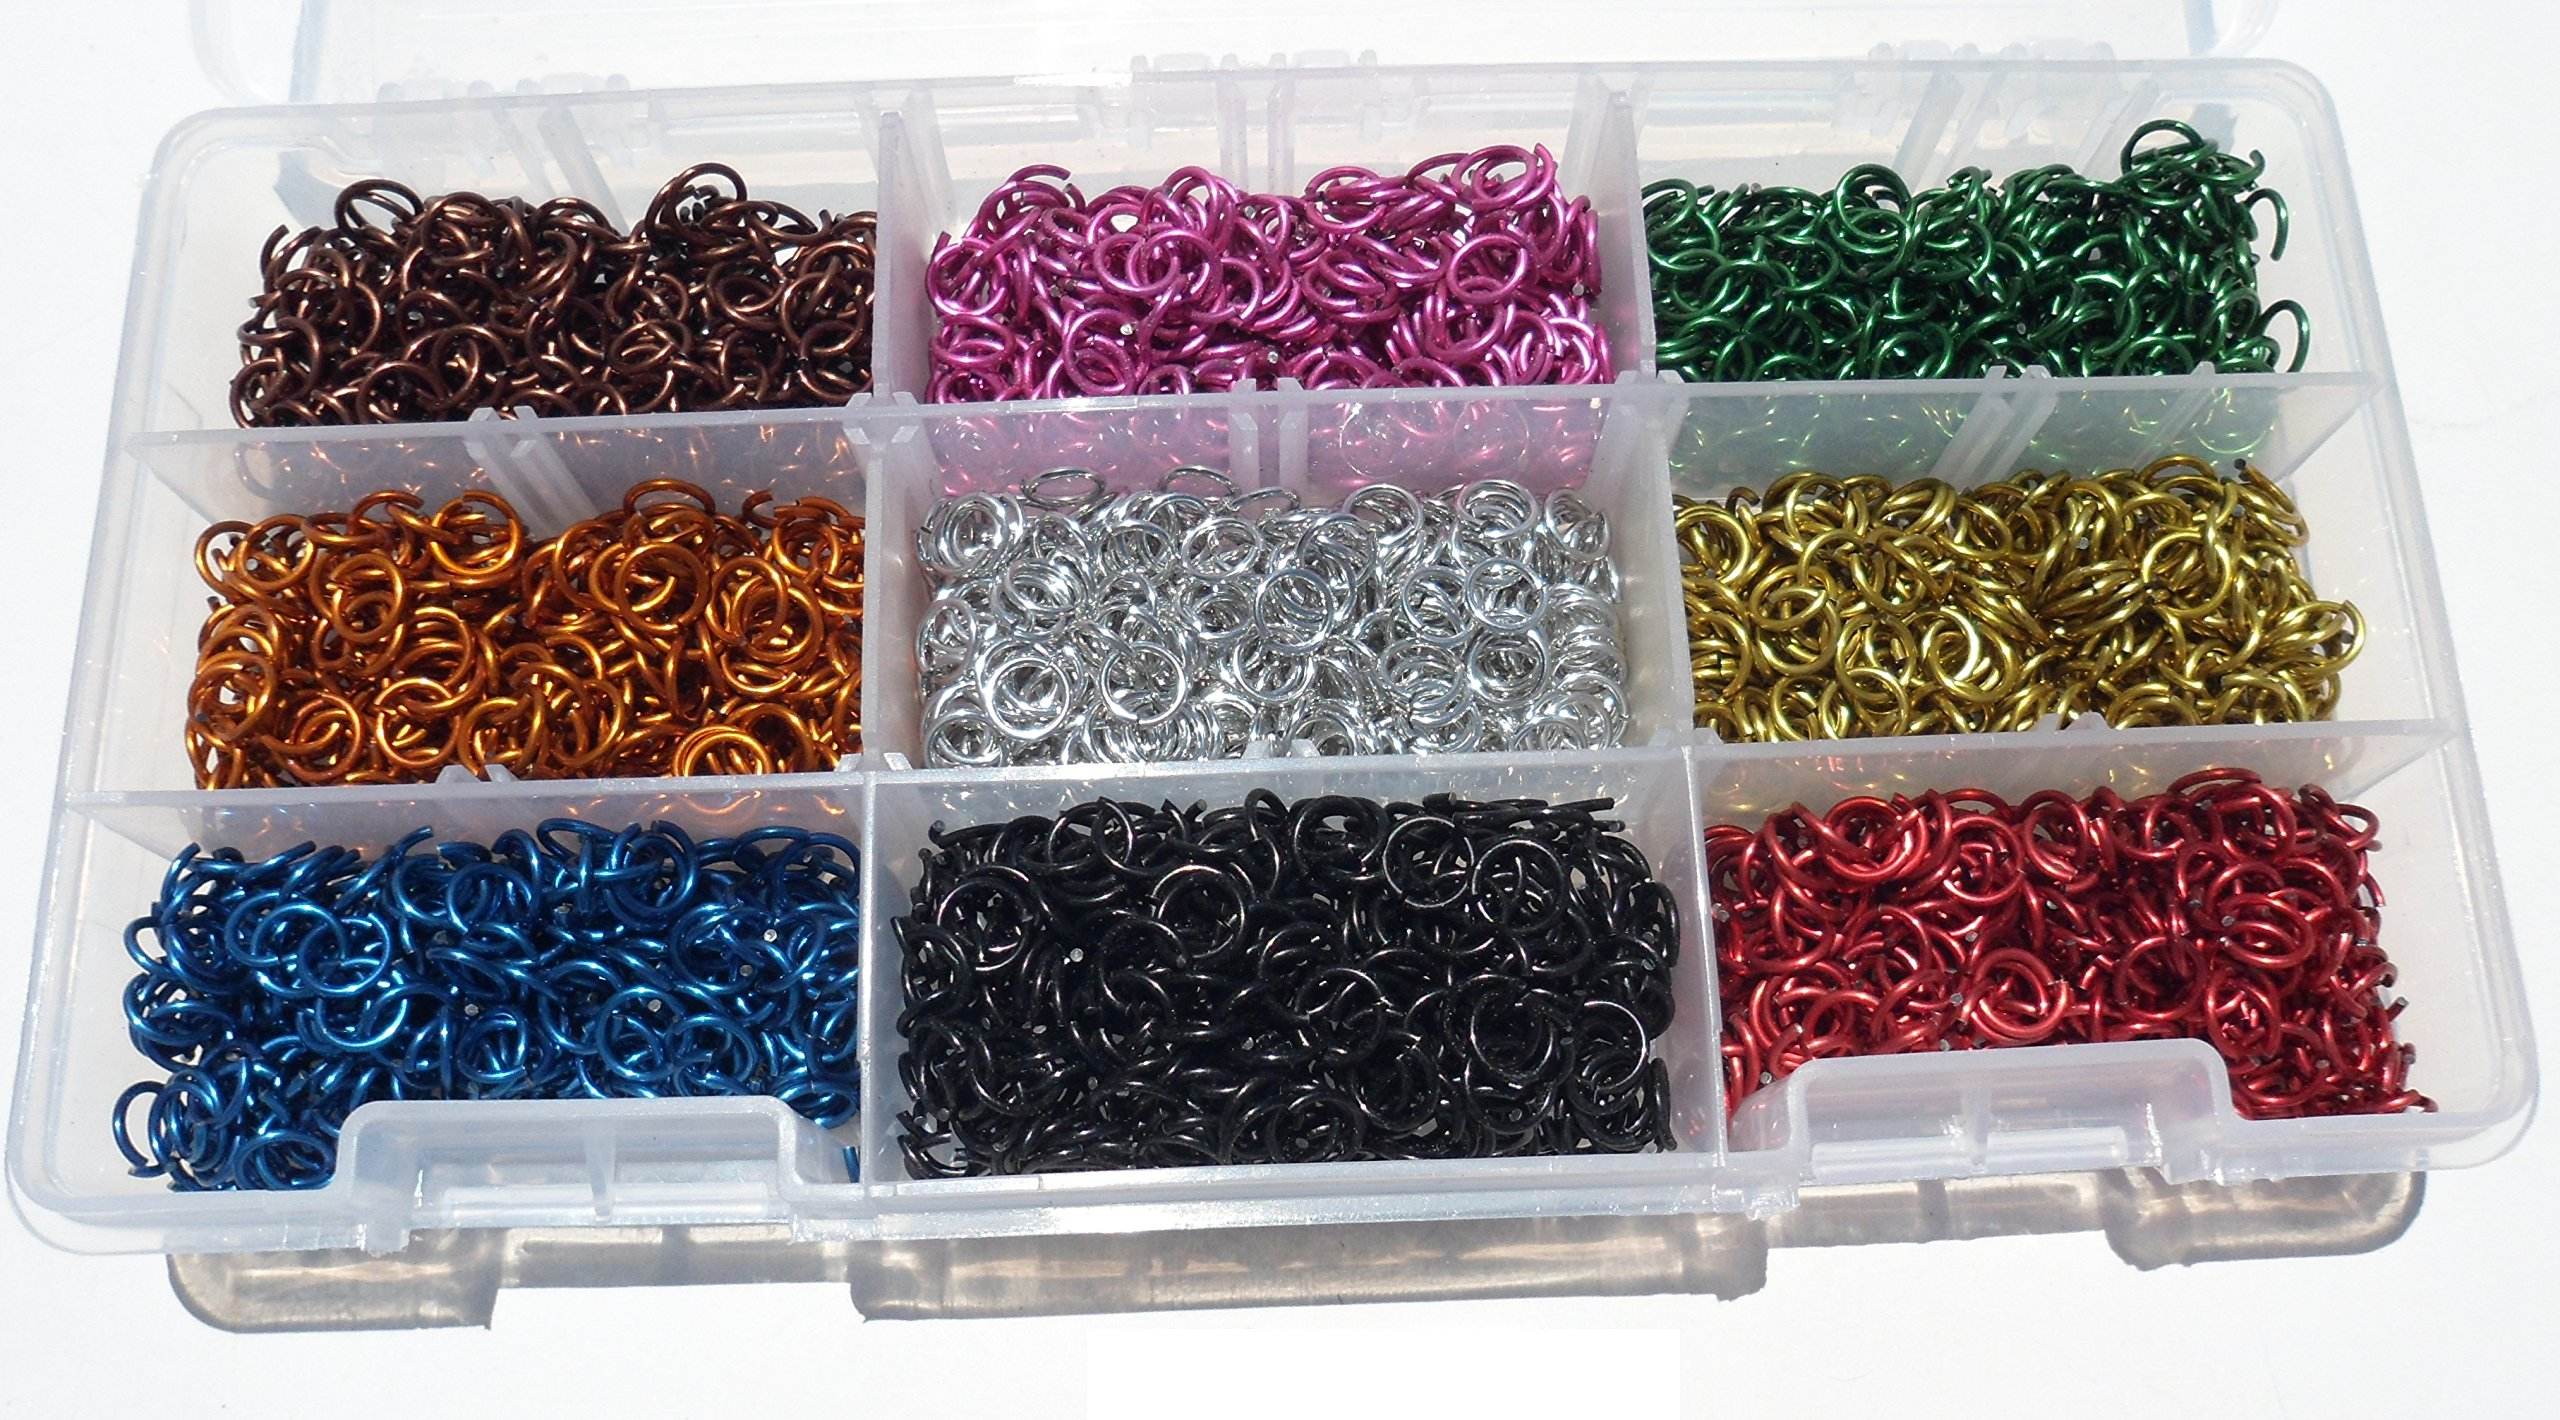 American Chain Mail Jeweler Starter Kit Anodized Aluminum Jump Rings, 1/4 Inch ID (16 Gauge) by American Chain Mail